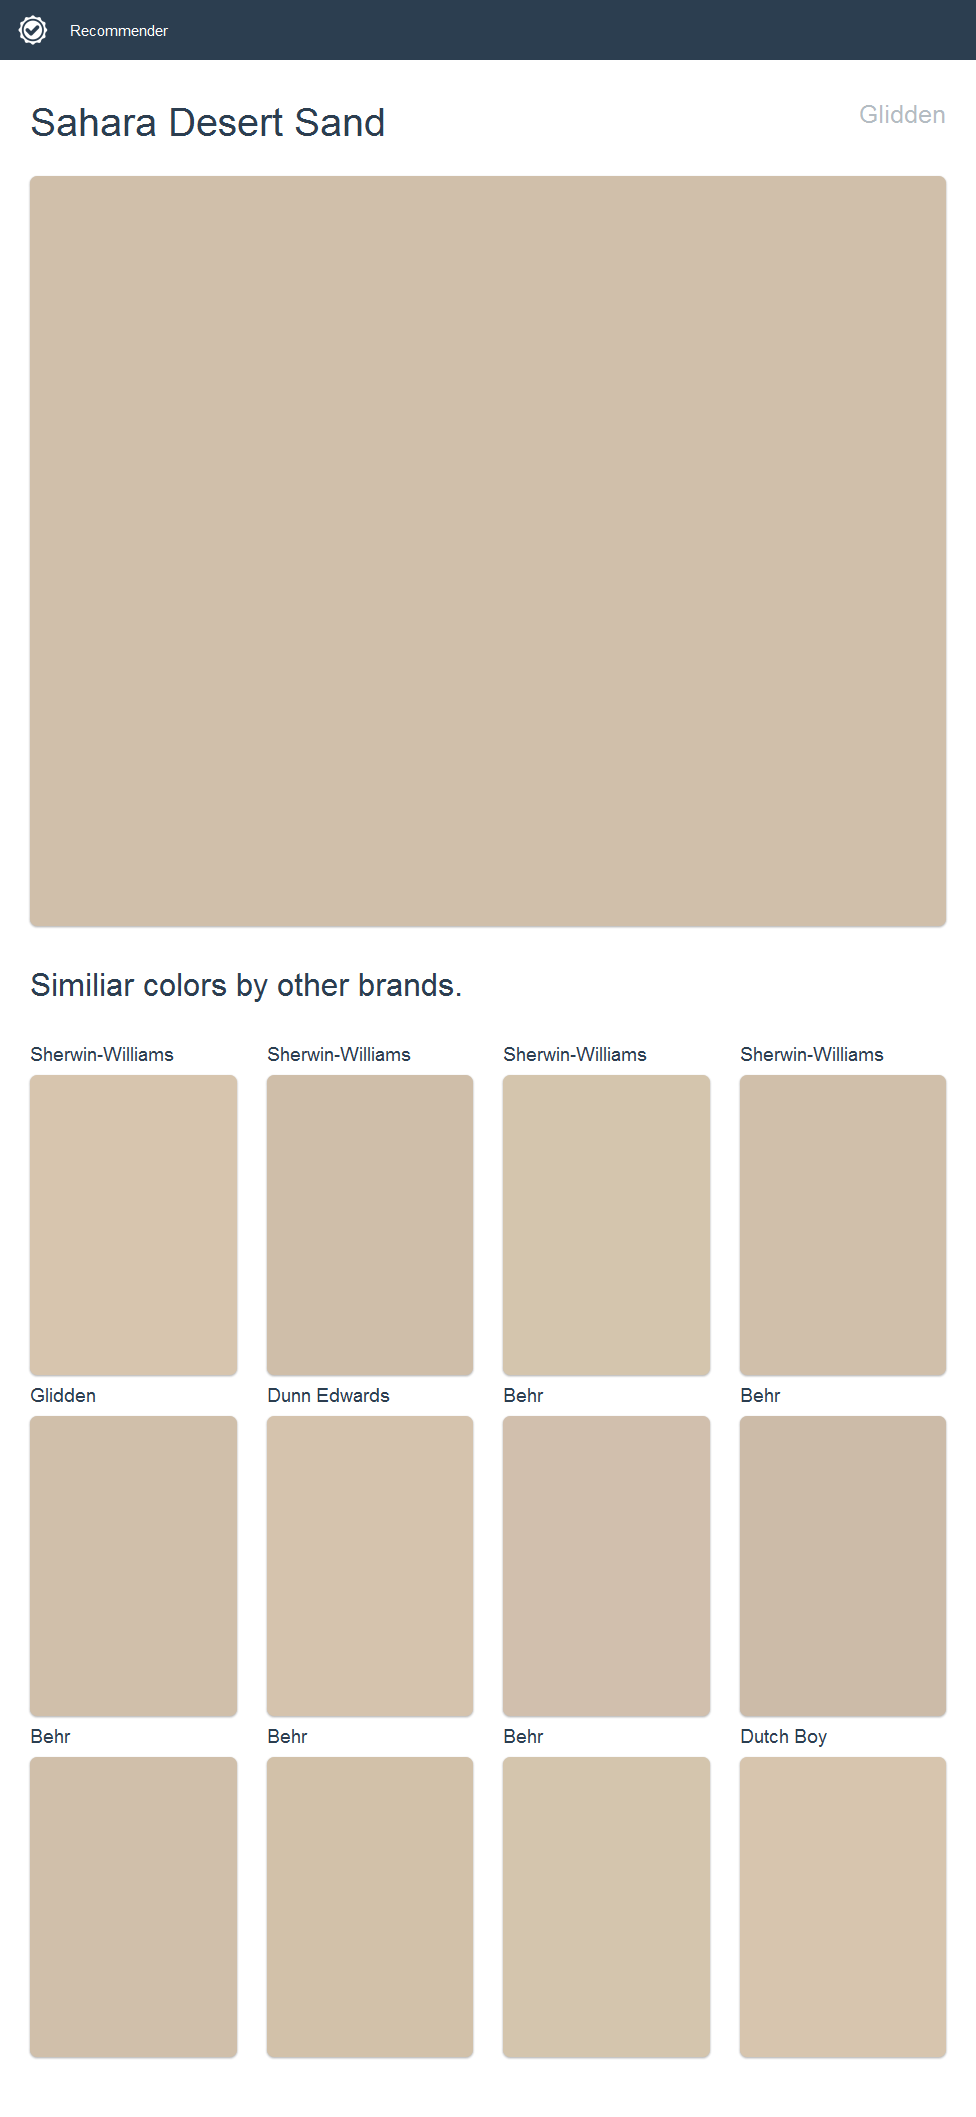 Sahara Desert Sand Glidden Click The Image To See Similiar Colors By Other Brands